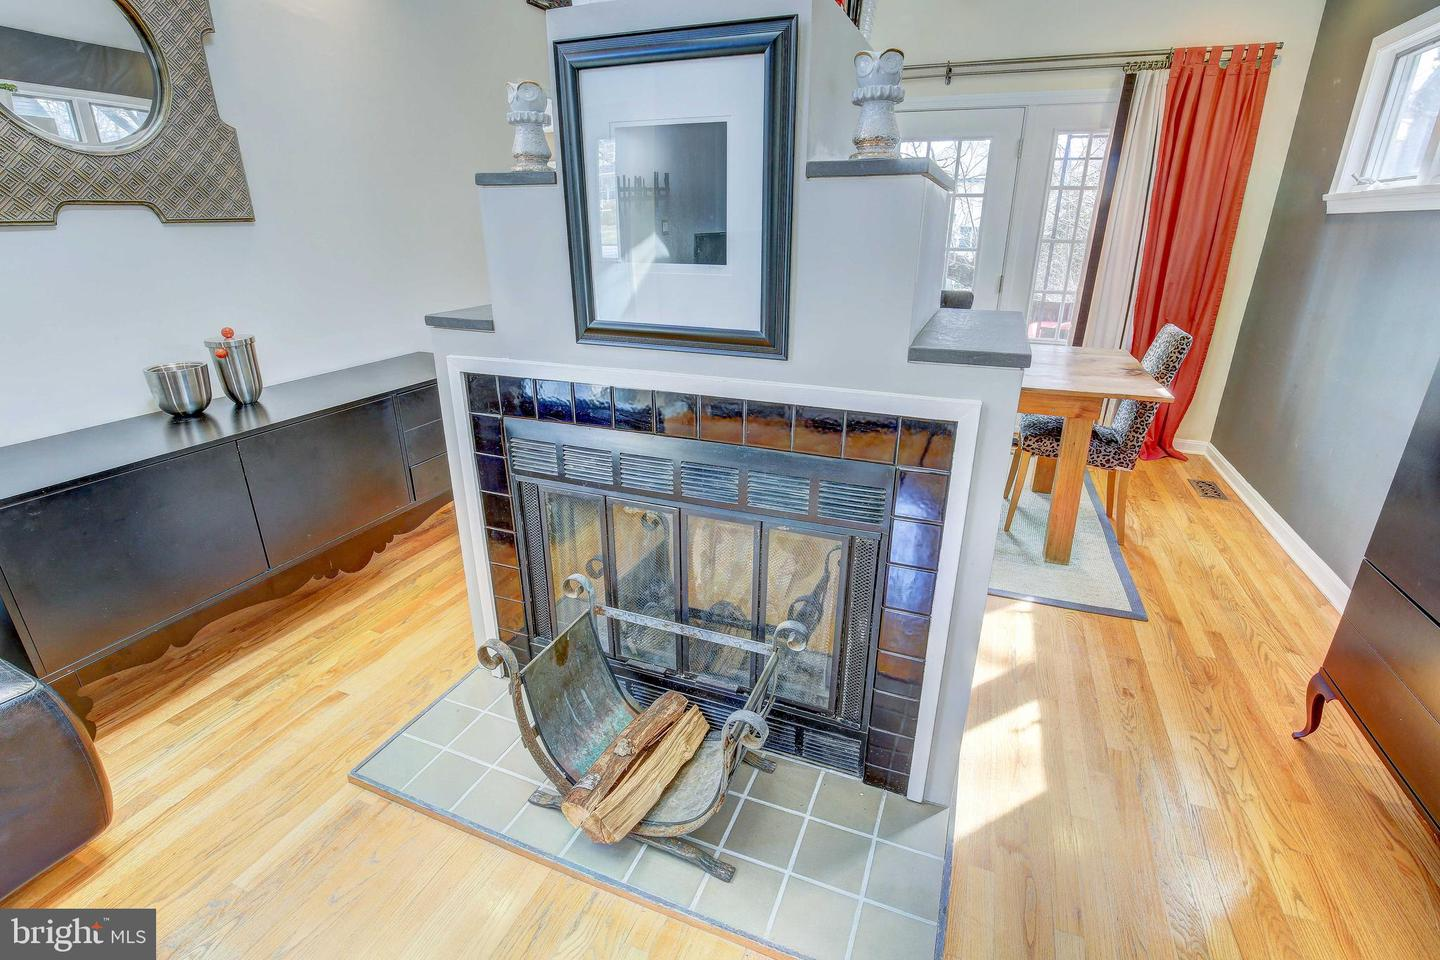 Additional photo for property listing at 135 S Homeland Ave Annapolis, Maryland 21401 United States